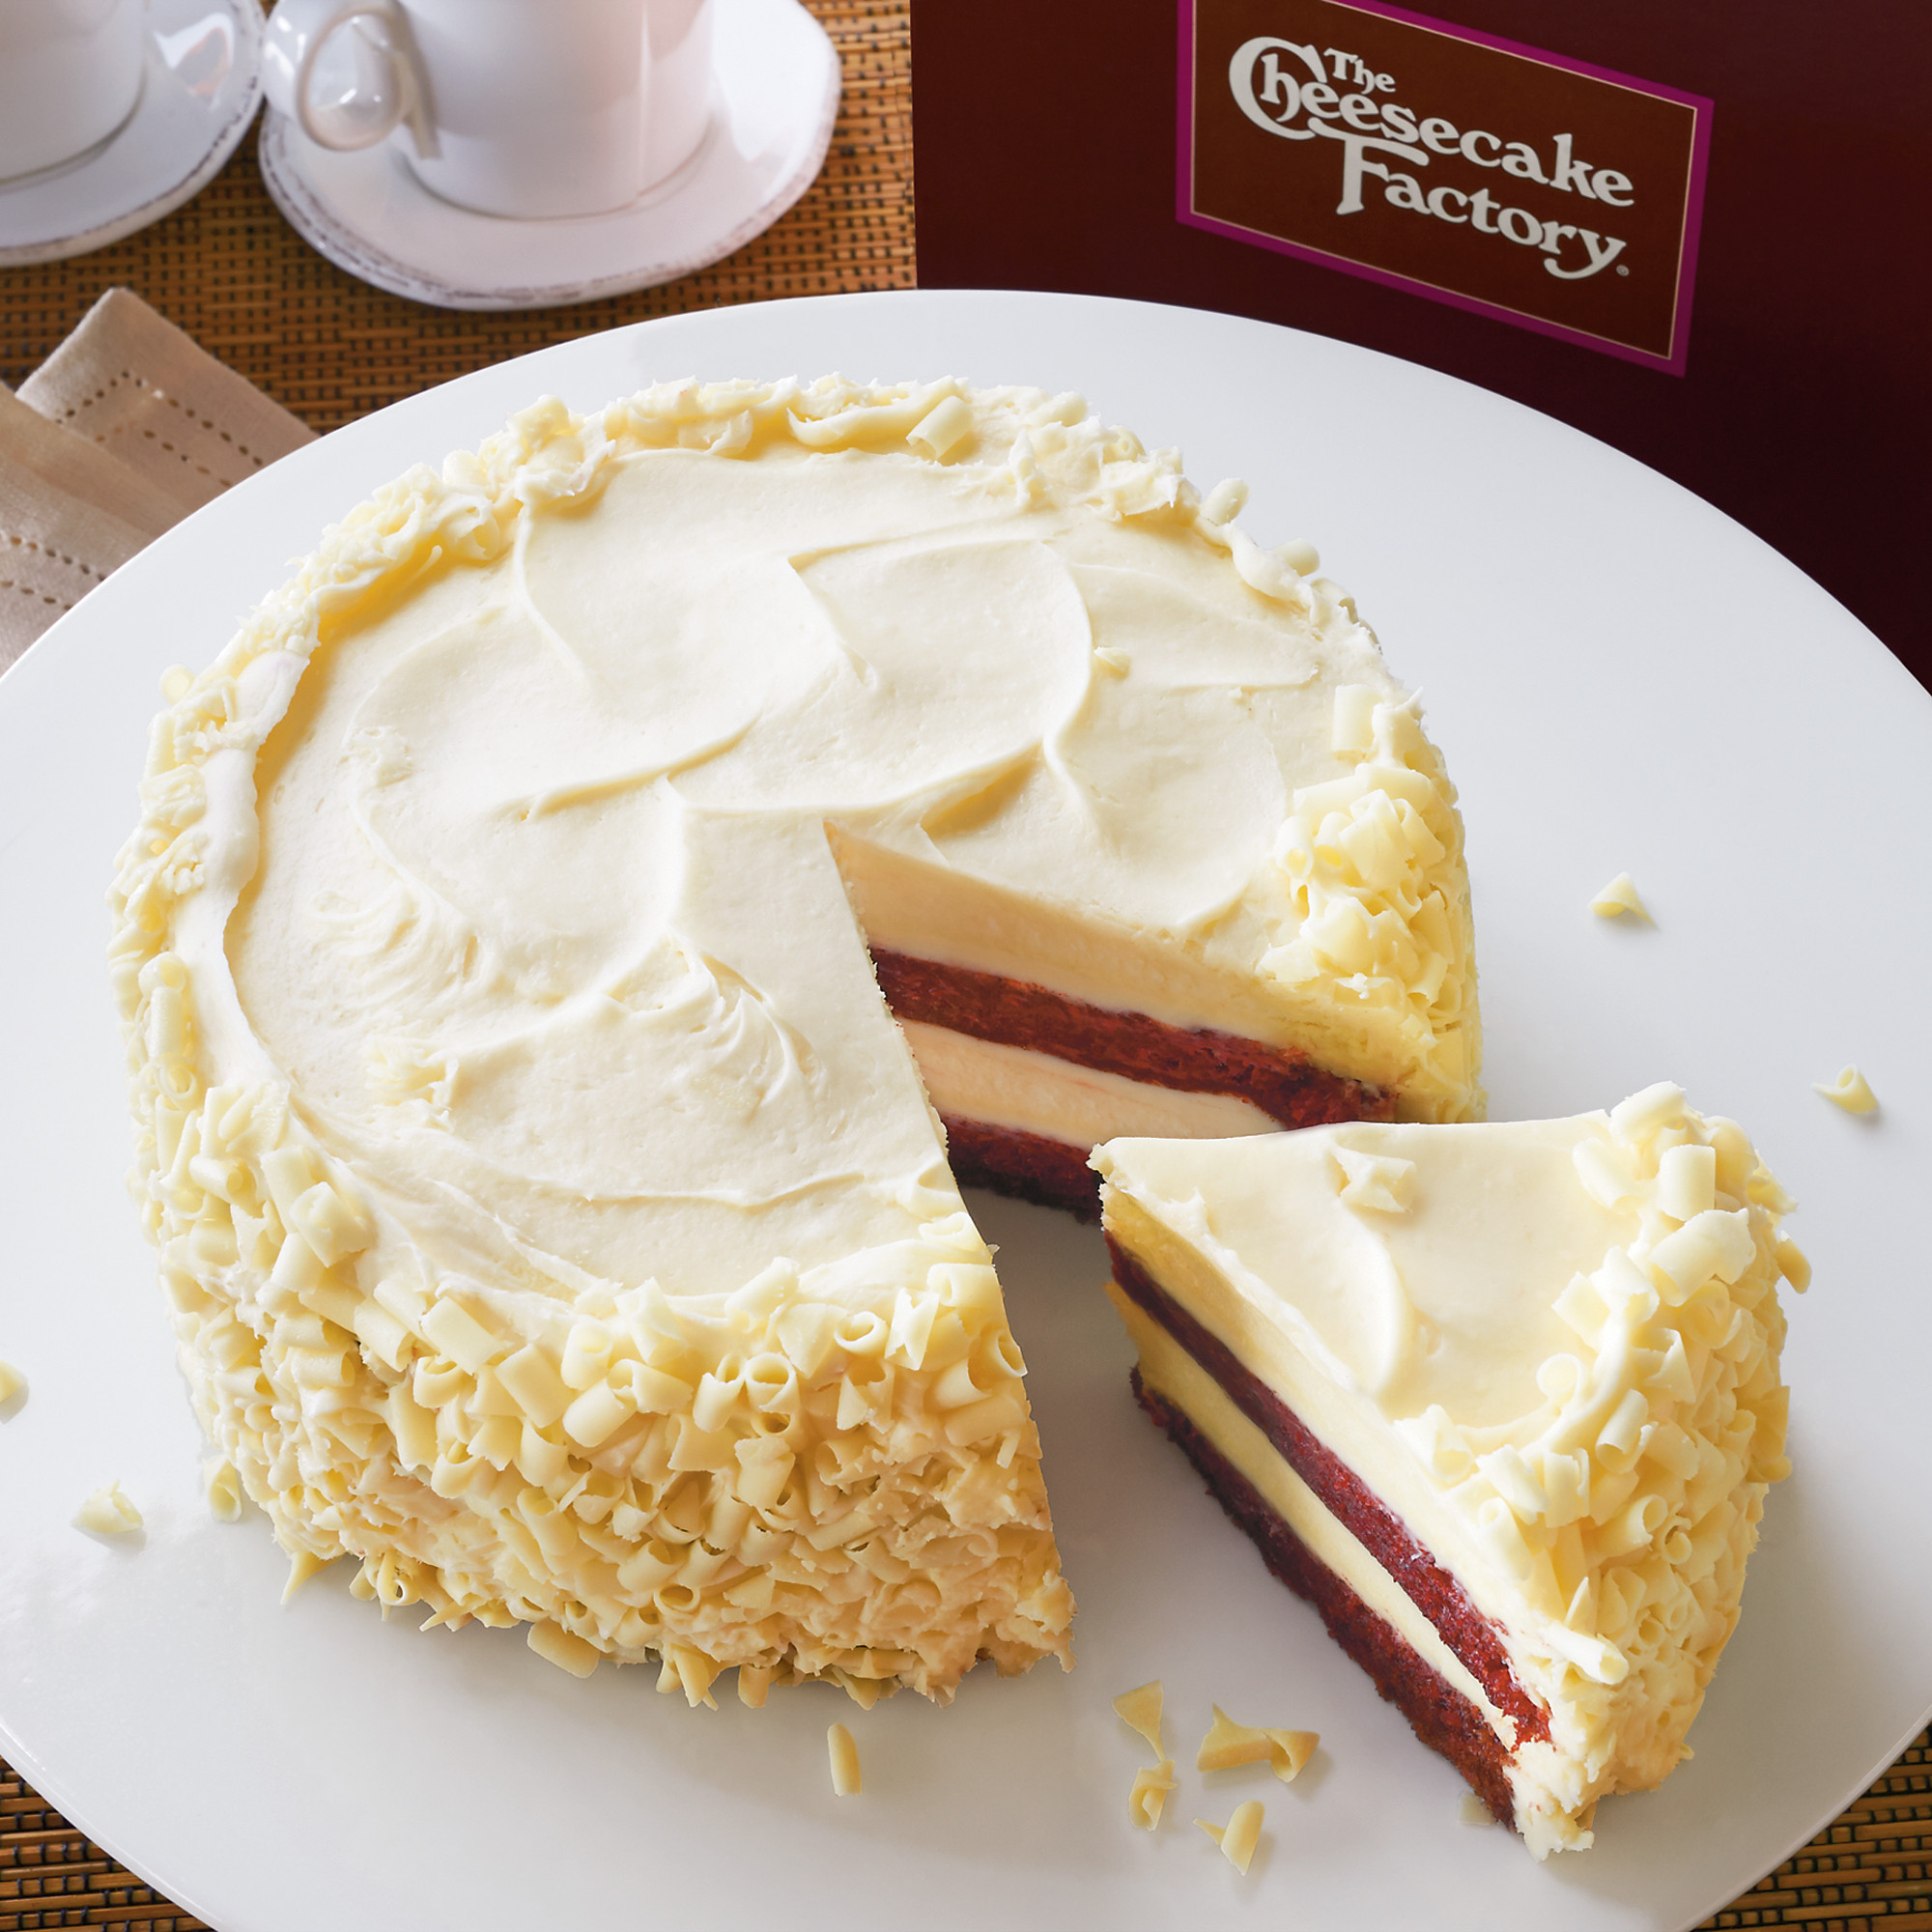 The Cheesecake Factory Ultimate Red Velvet Cake Cheesecake  ☆Desserts☆ on Pinterest